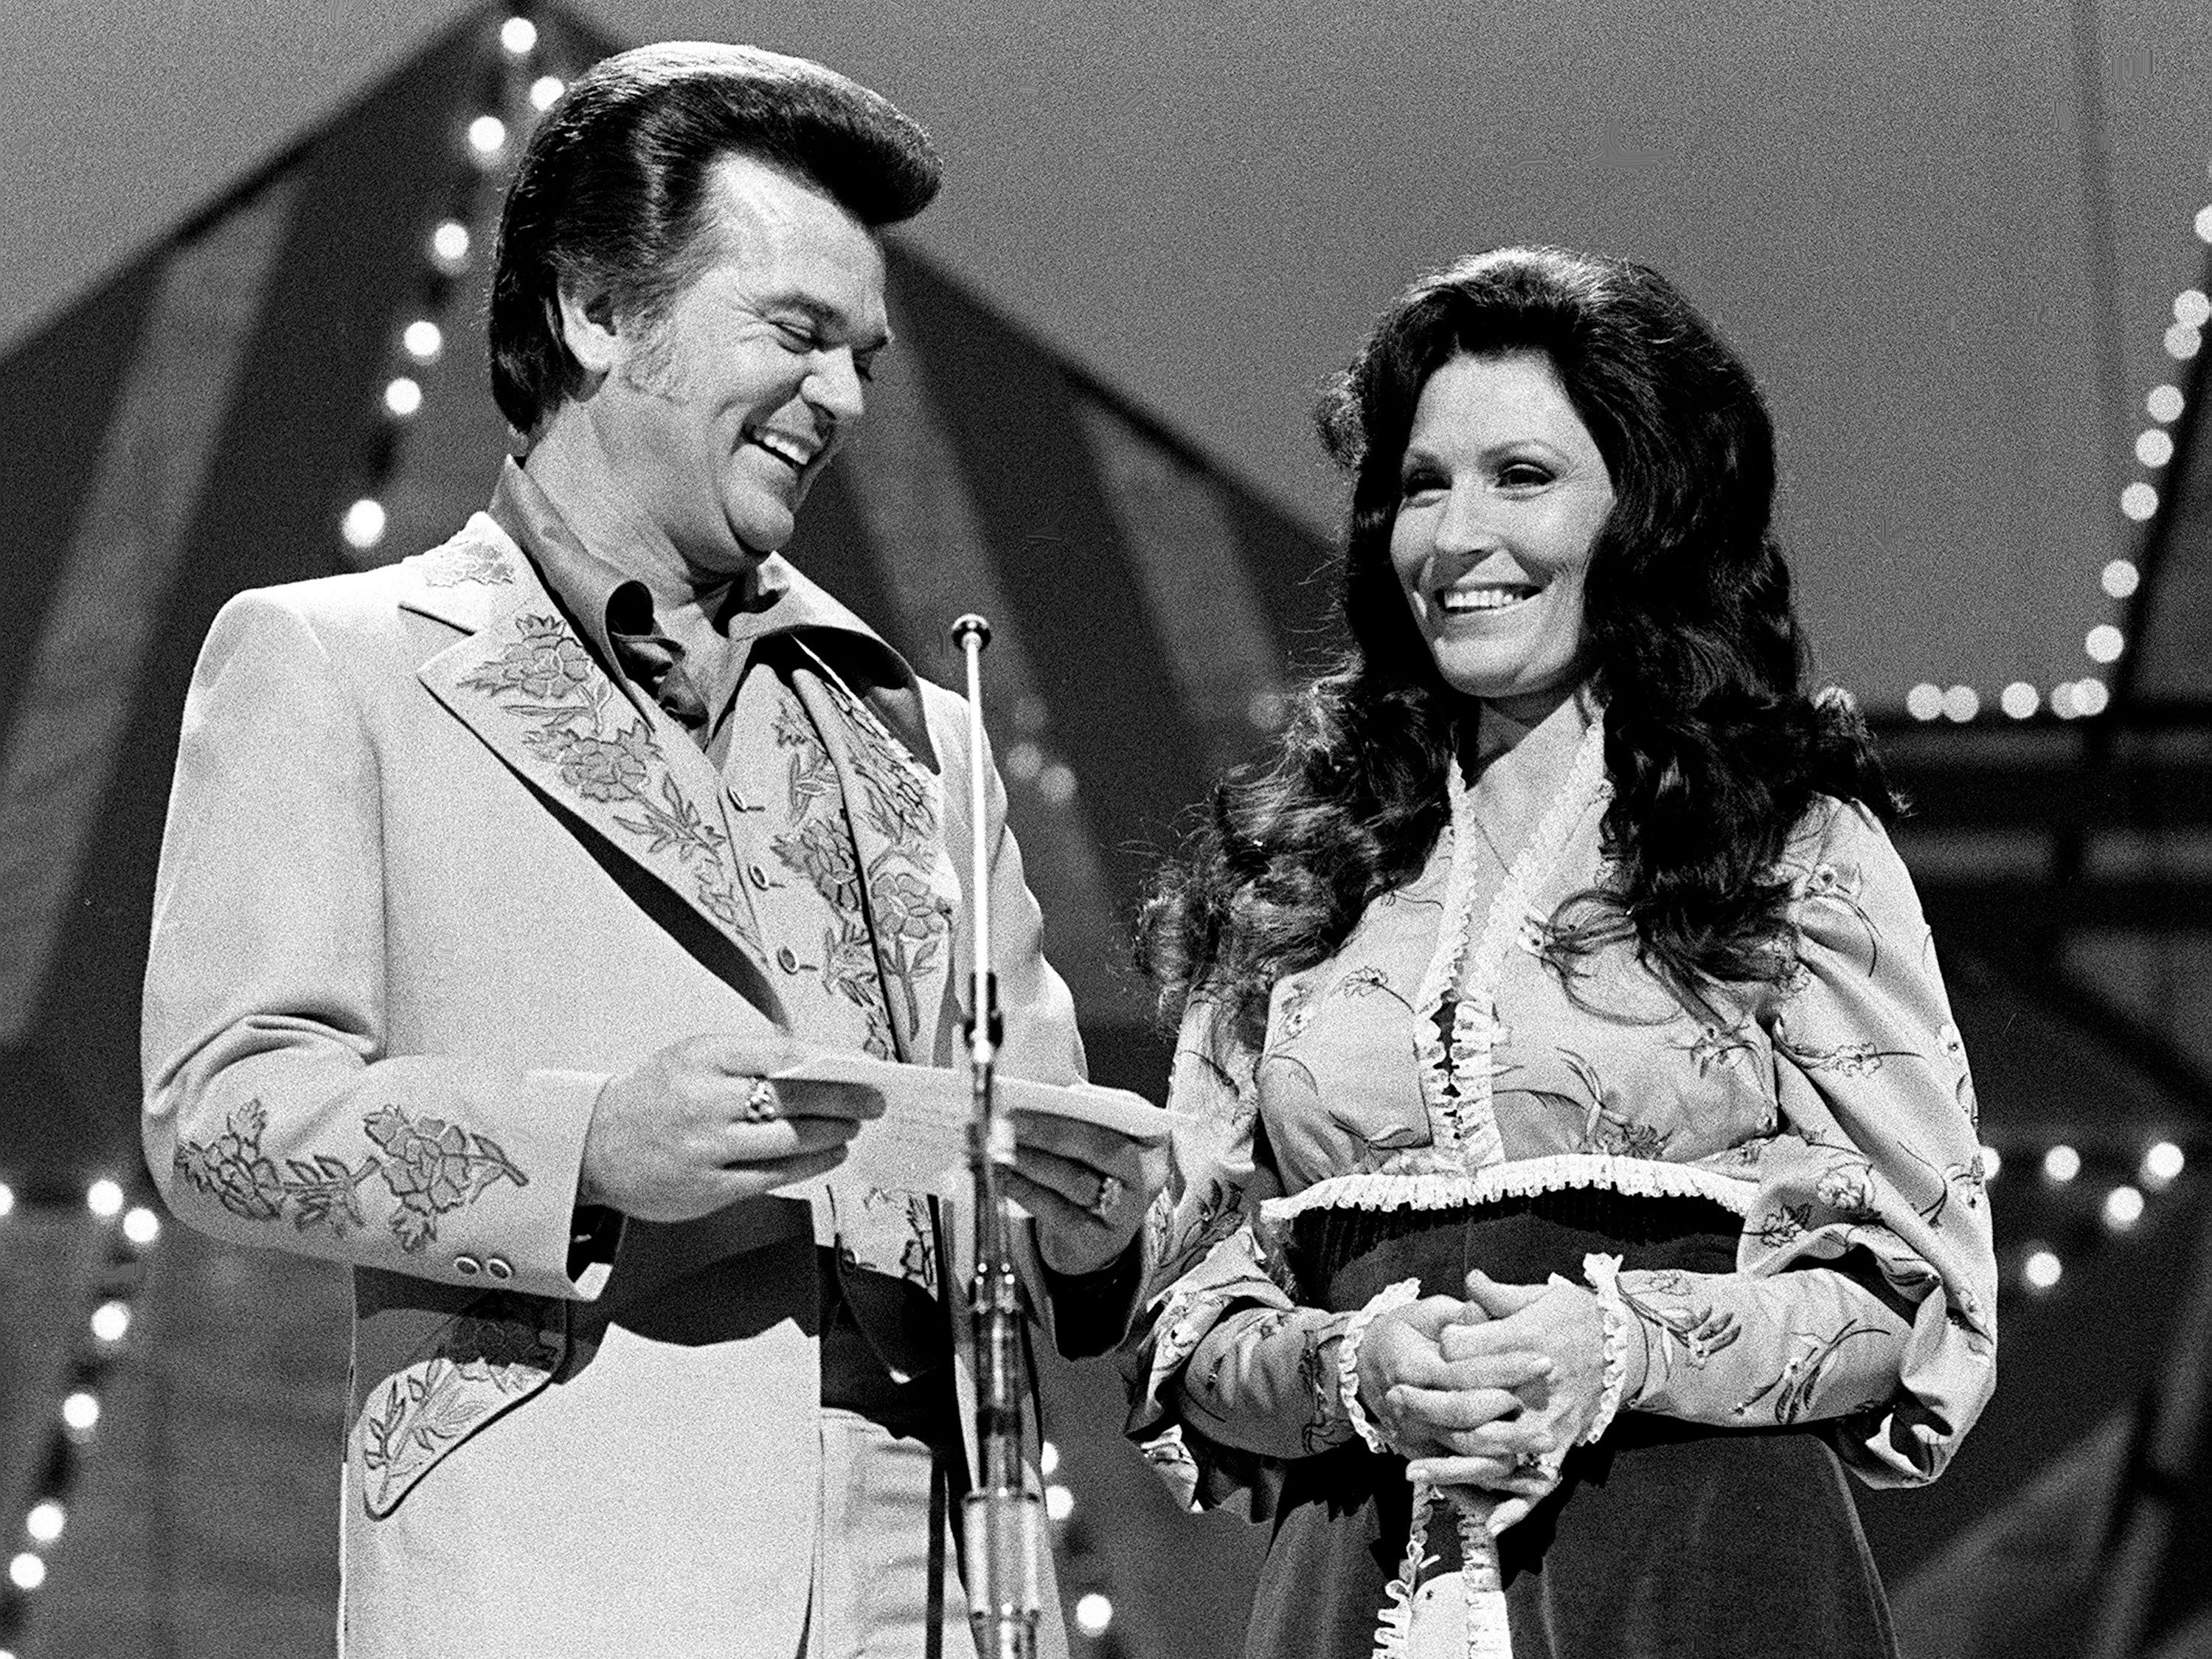 Loretta Lynn, right, and Conway Twitty are presenting the Vocal Duo of the Year award during the nationally televised CMA awards show from the Grand Ole Opry House Oct. 11, 1976.